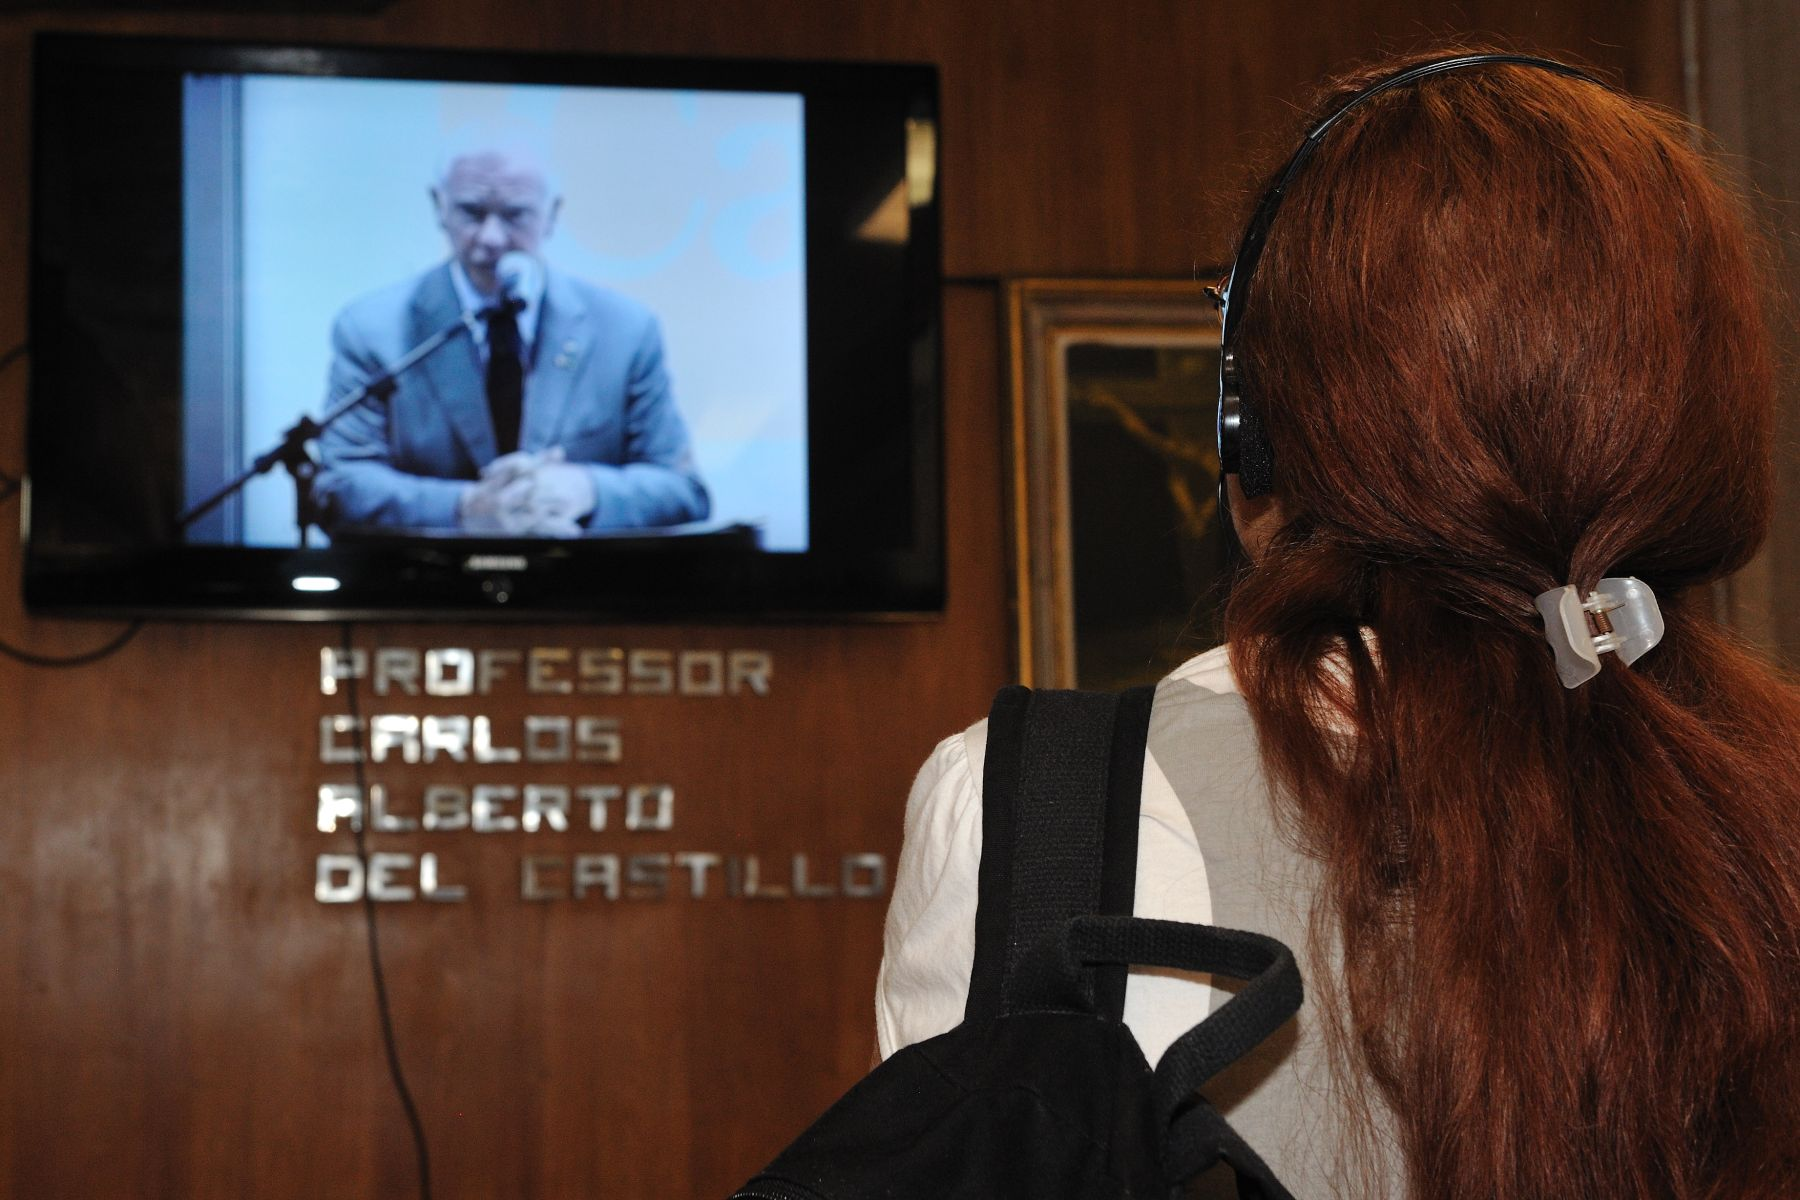 Some participant had to listen to the speech in the hallway of the Pontifícia Universidade Católica.